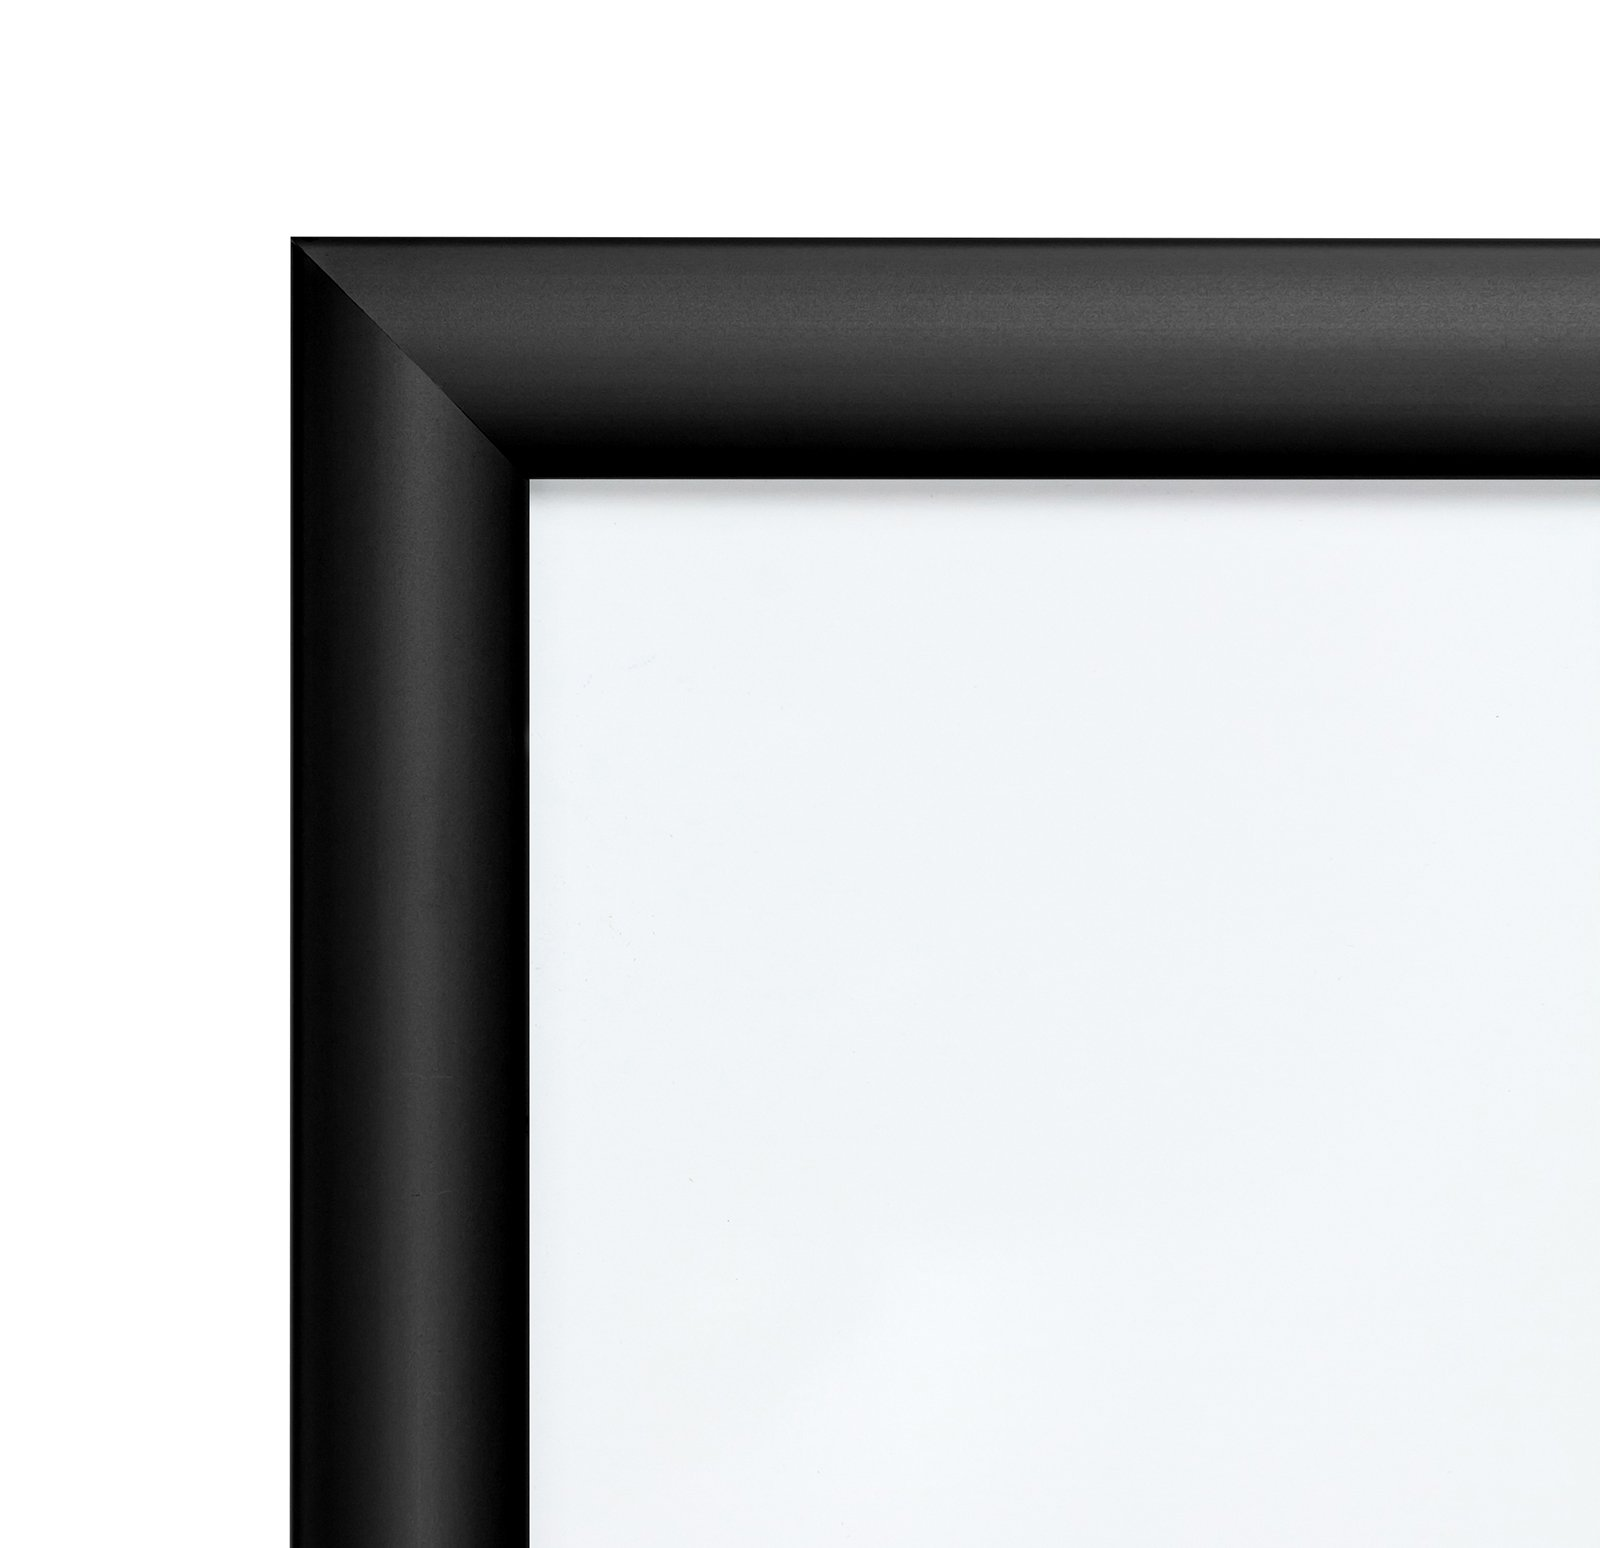 SnapeZo Weather Resistant Black Poster Frame 8.5x11 Inches, 1.38 Inch Outdoor Profile, Outdoor Poster Display Unit by SnapeZo (Image #2)